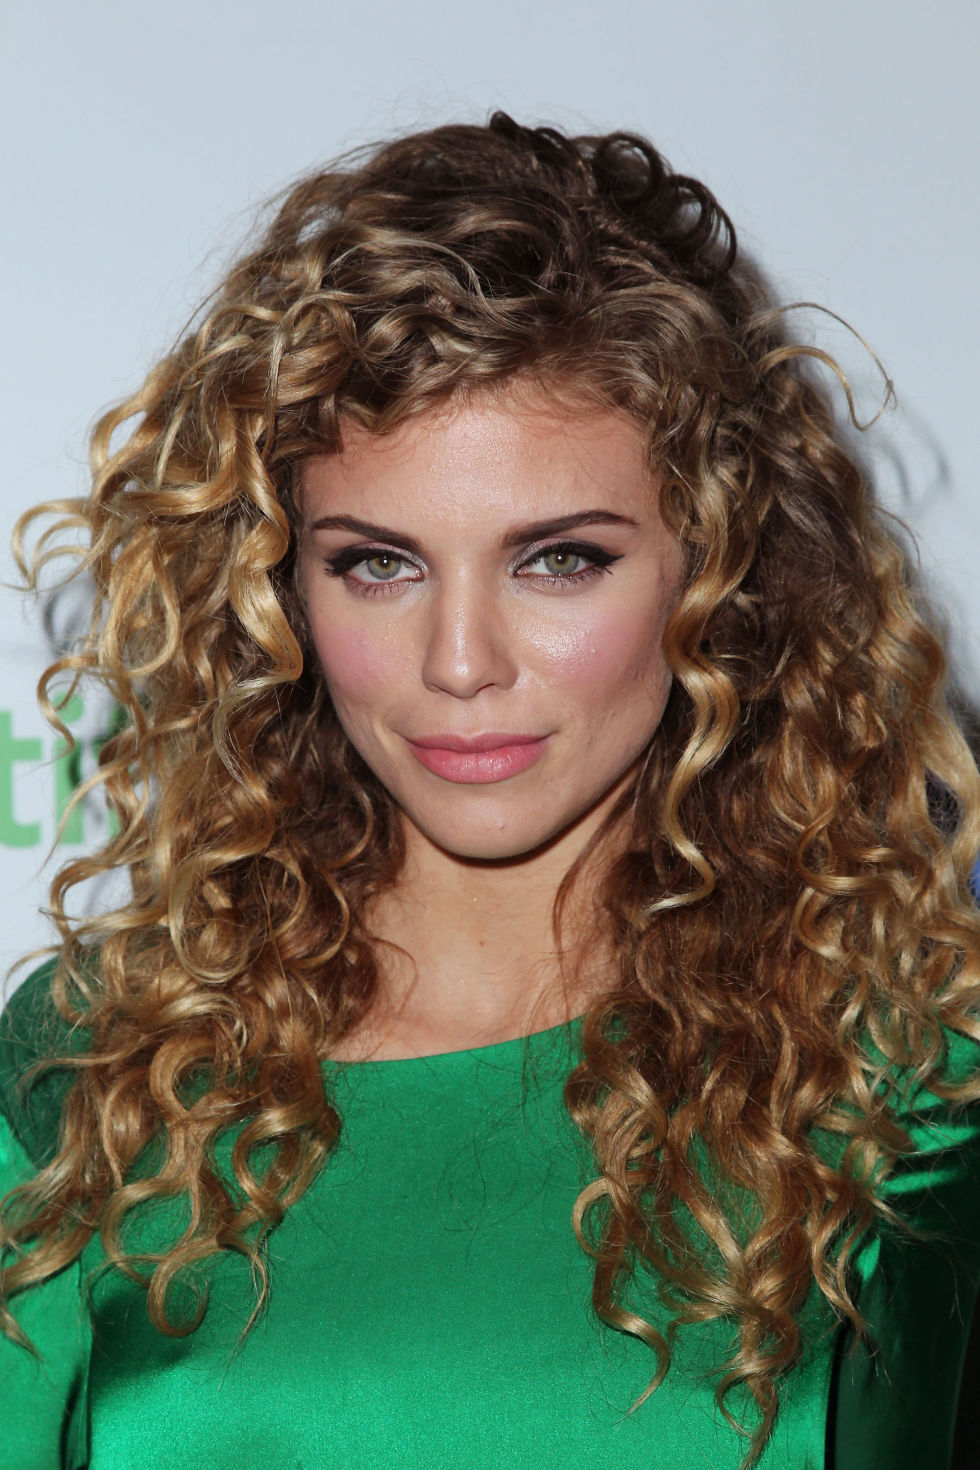 Tremendous 30 Best Curly Hairstyles Of 2017 Cute Hairstyles For Curly Hair Hairstyles For Women Draintrainus